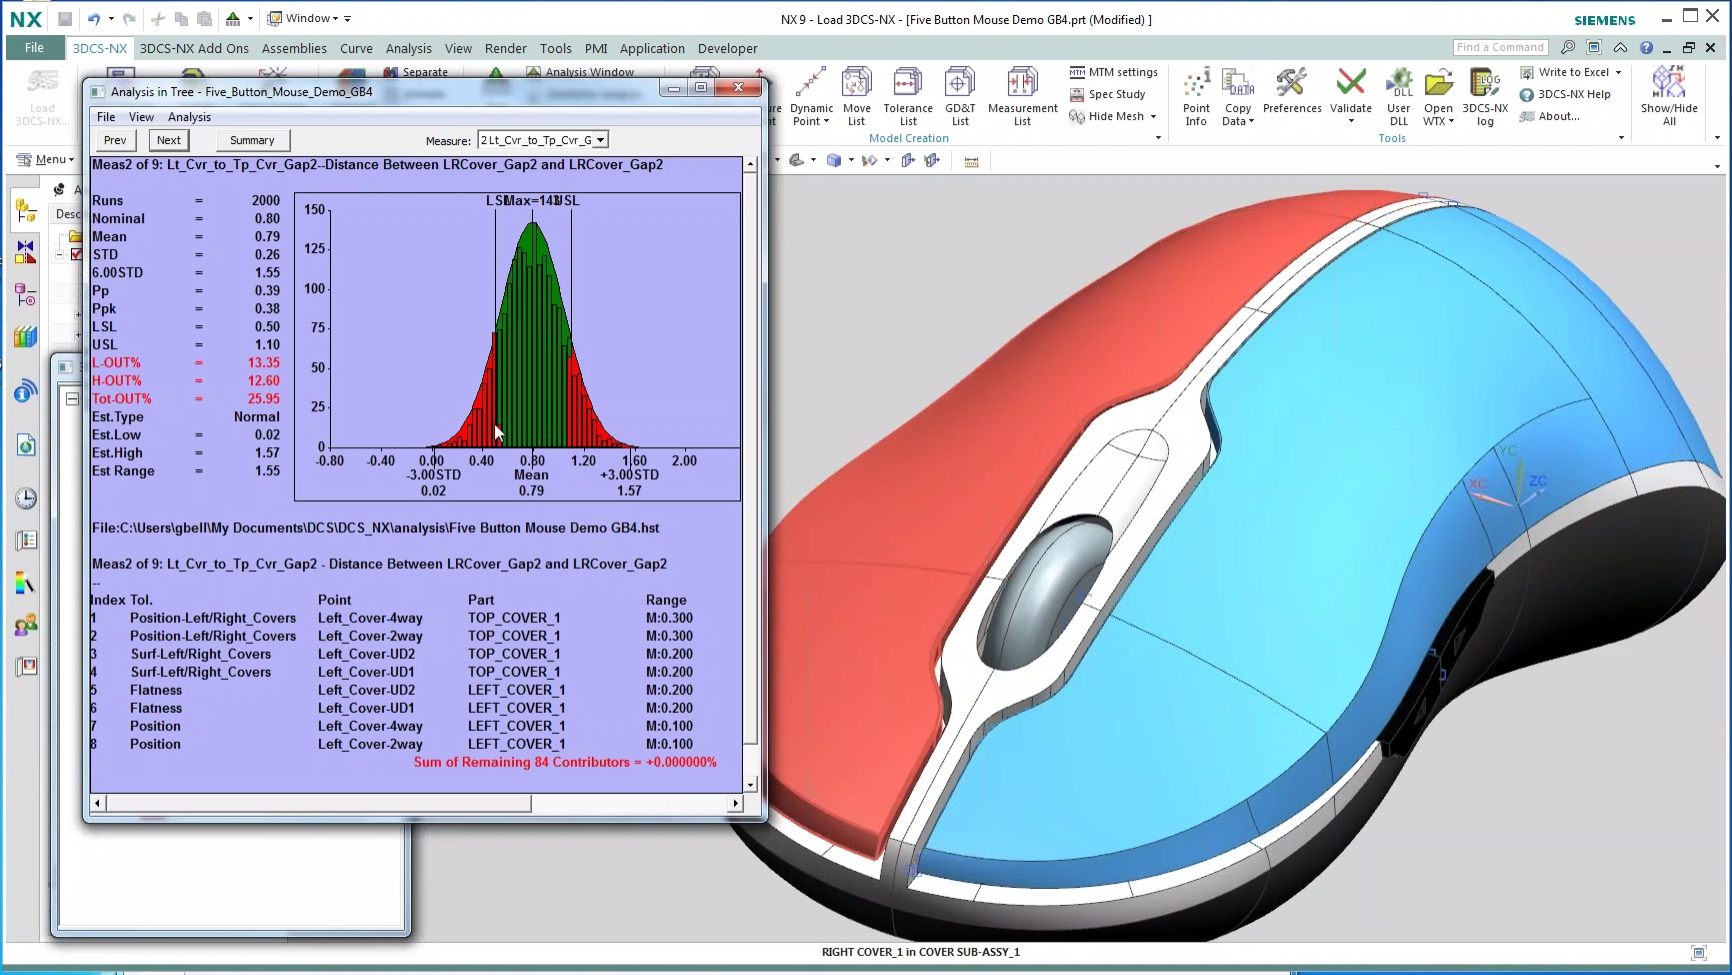 3dcs-nx-mouse-tolerance-analysis-contributorsa